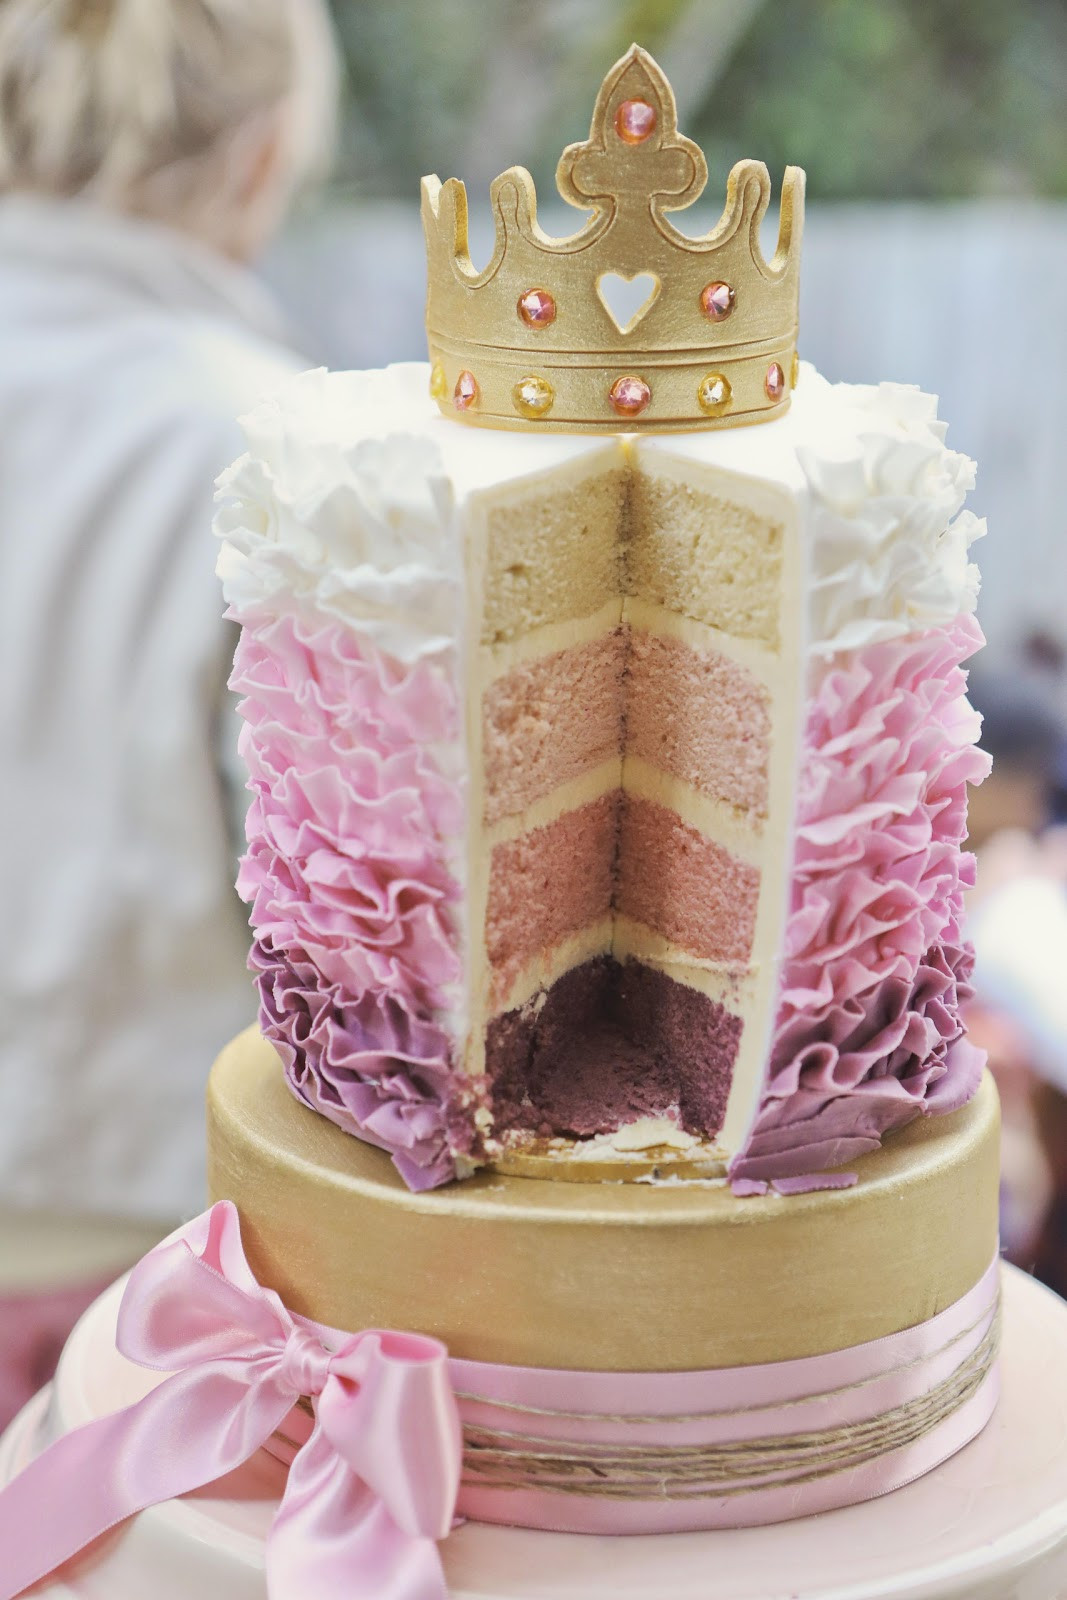 Best ideas about Princess Birthday Cake . Save or Pin Bubble and Sweet How to eat a Tiara Pink Ruffle Now.